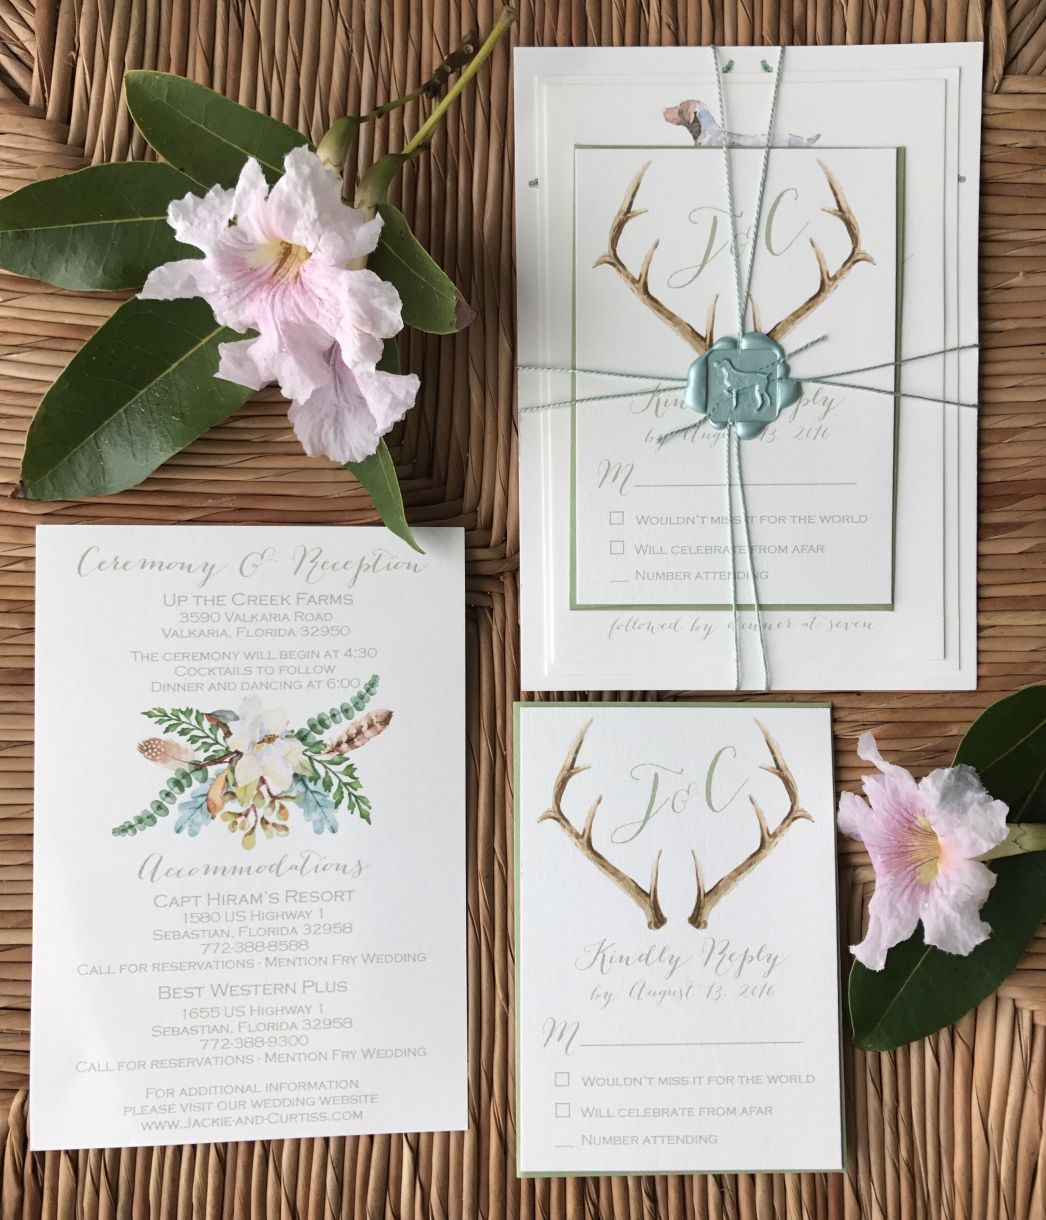 Wedding Invitation German Shorthaired Pointer Magnolias Antlers Save The Date Map Wax Seal Florida Southern Up Creek Farms